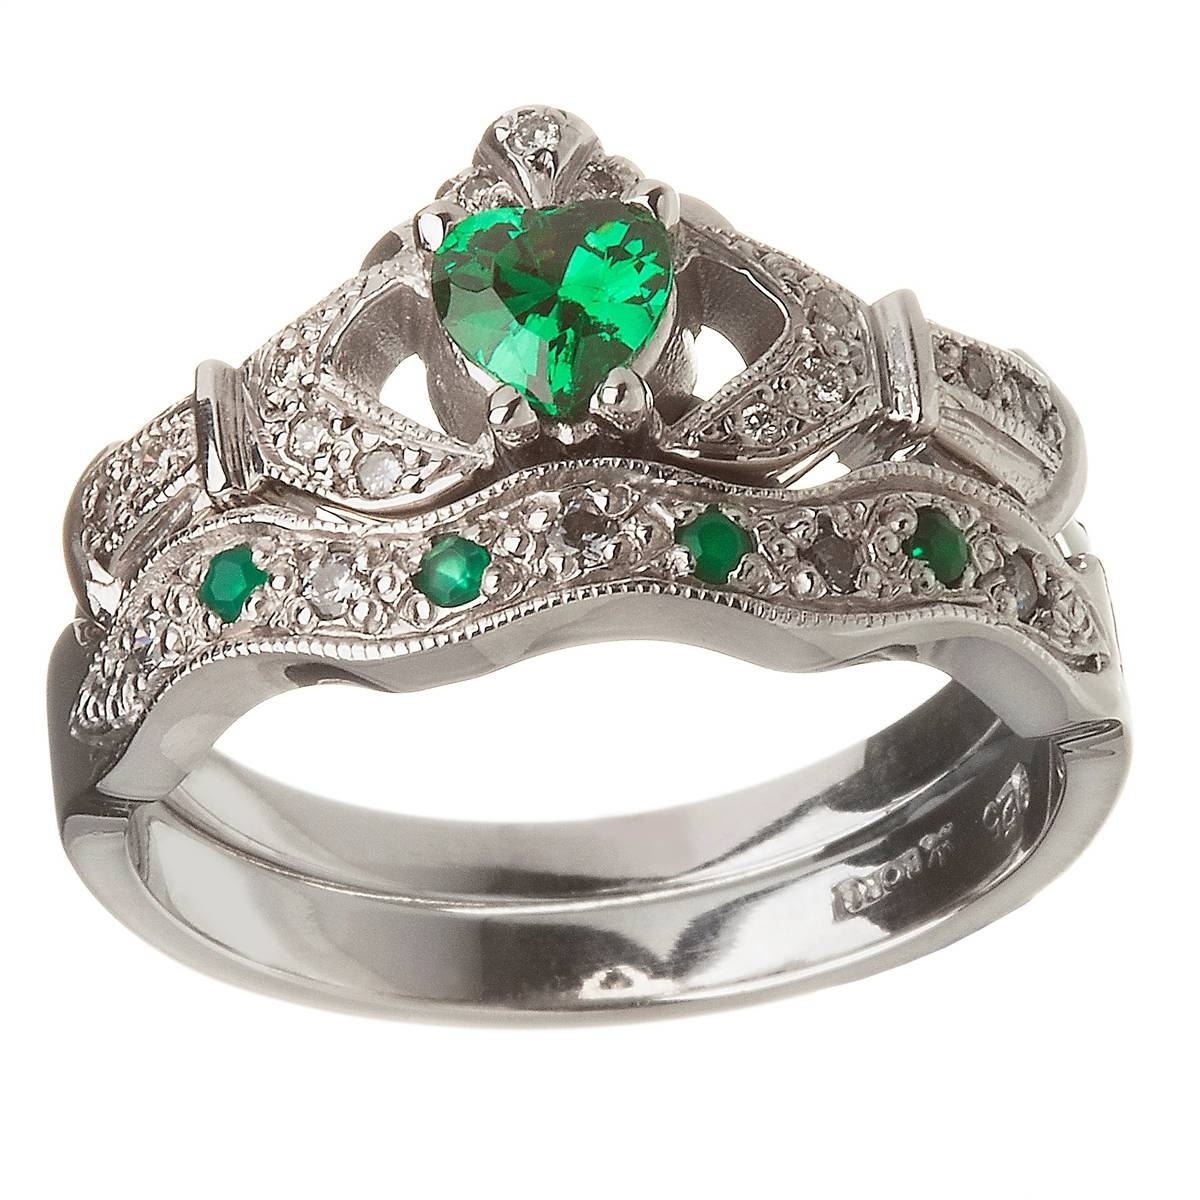 14K White Gold Emerald Set Heart Claddagh Ring & Wedding Ring Set Pertaining To Irish Claddagh Engagement Rings (Gallery 3 of 15)